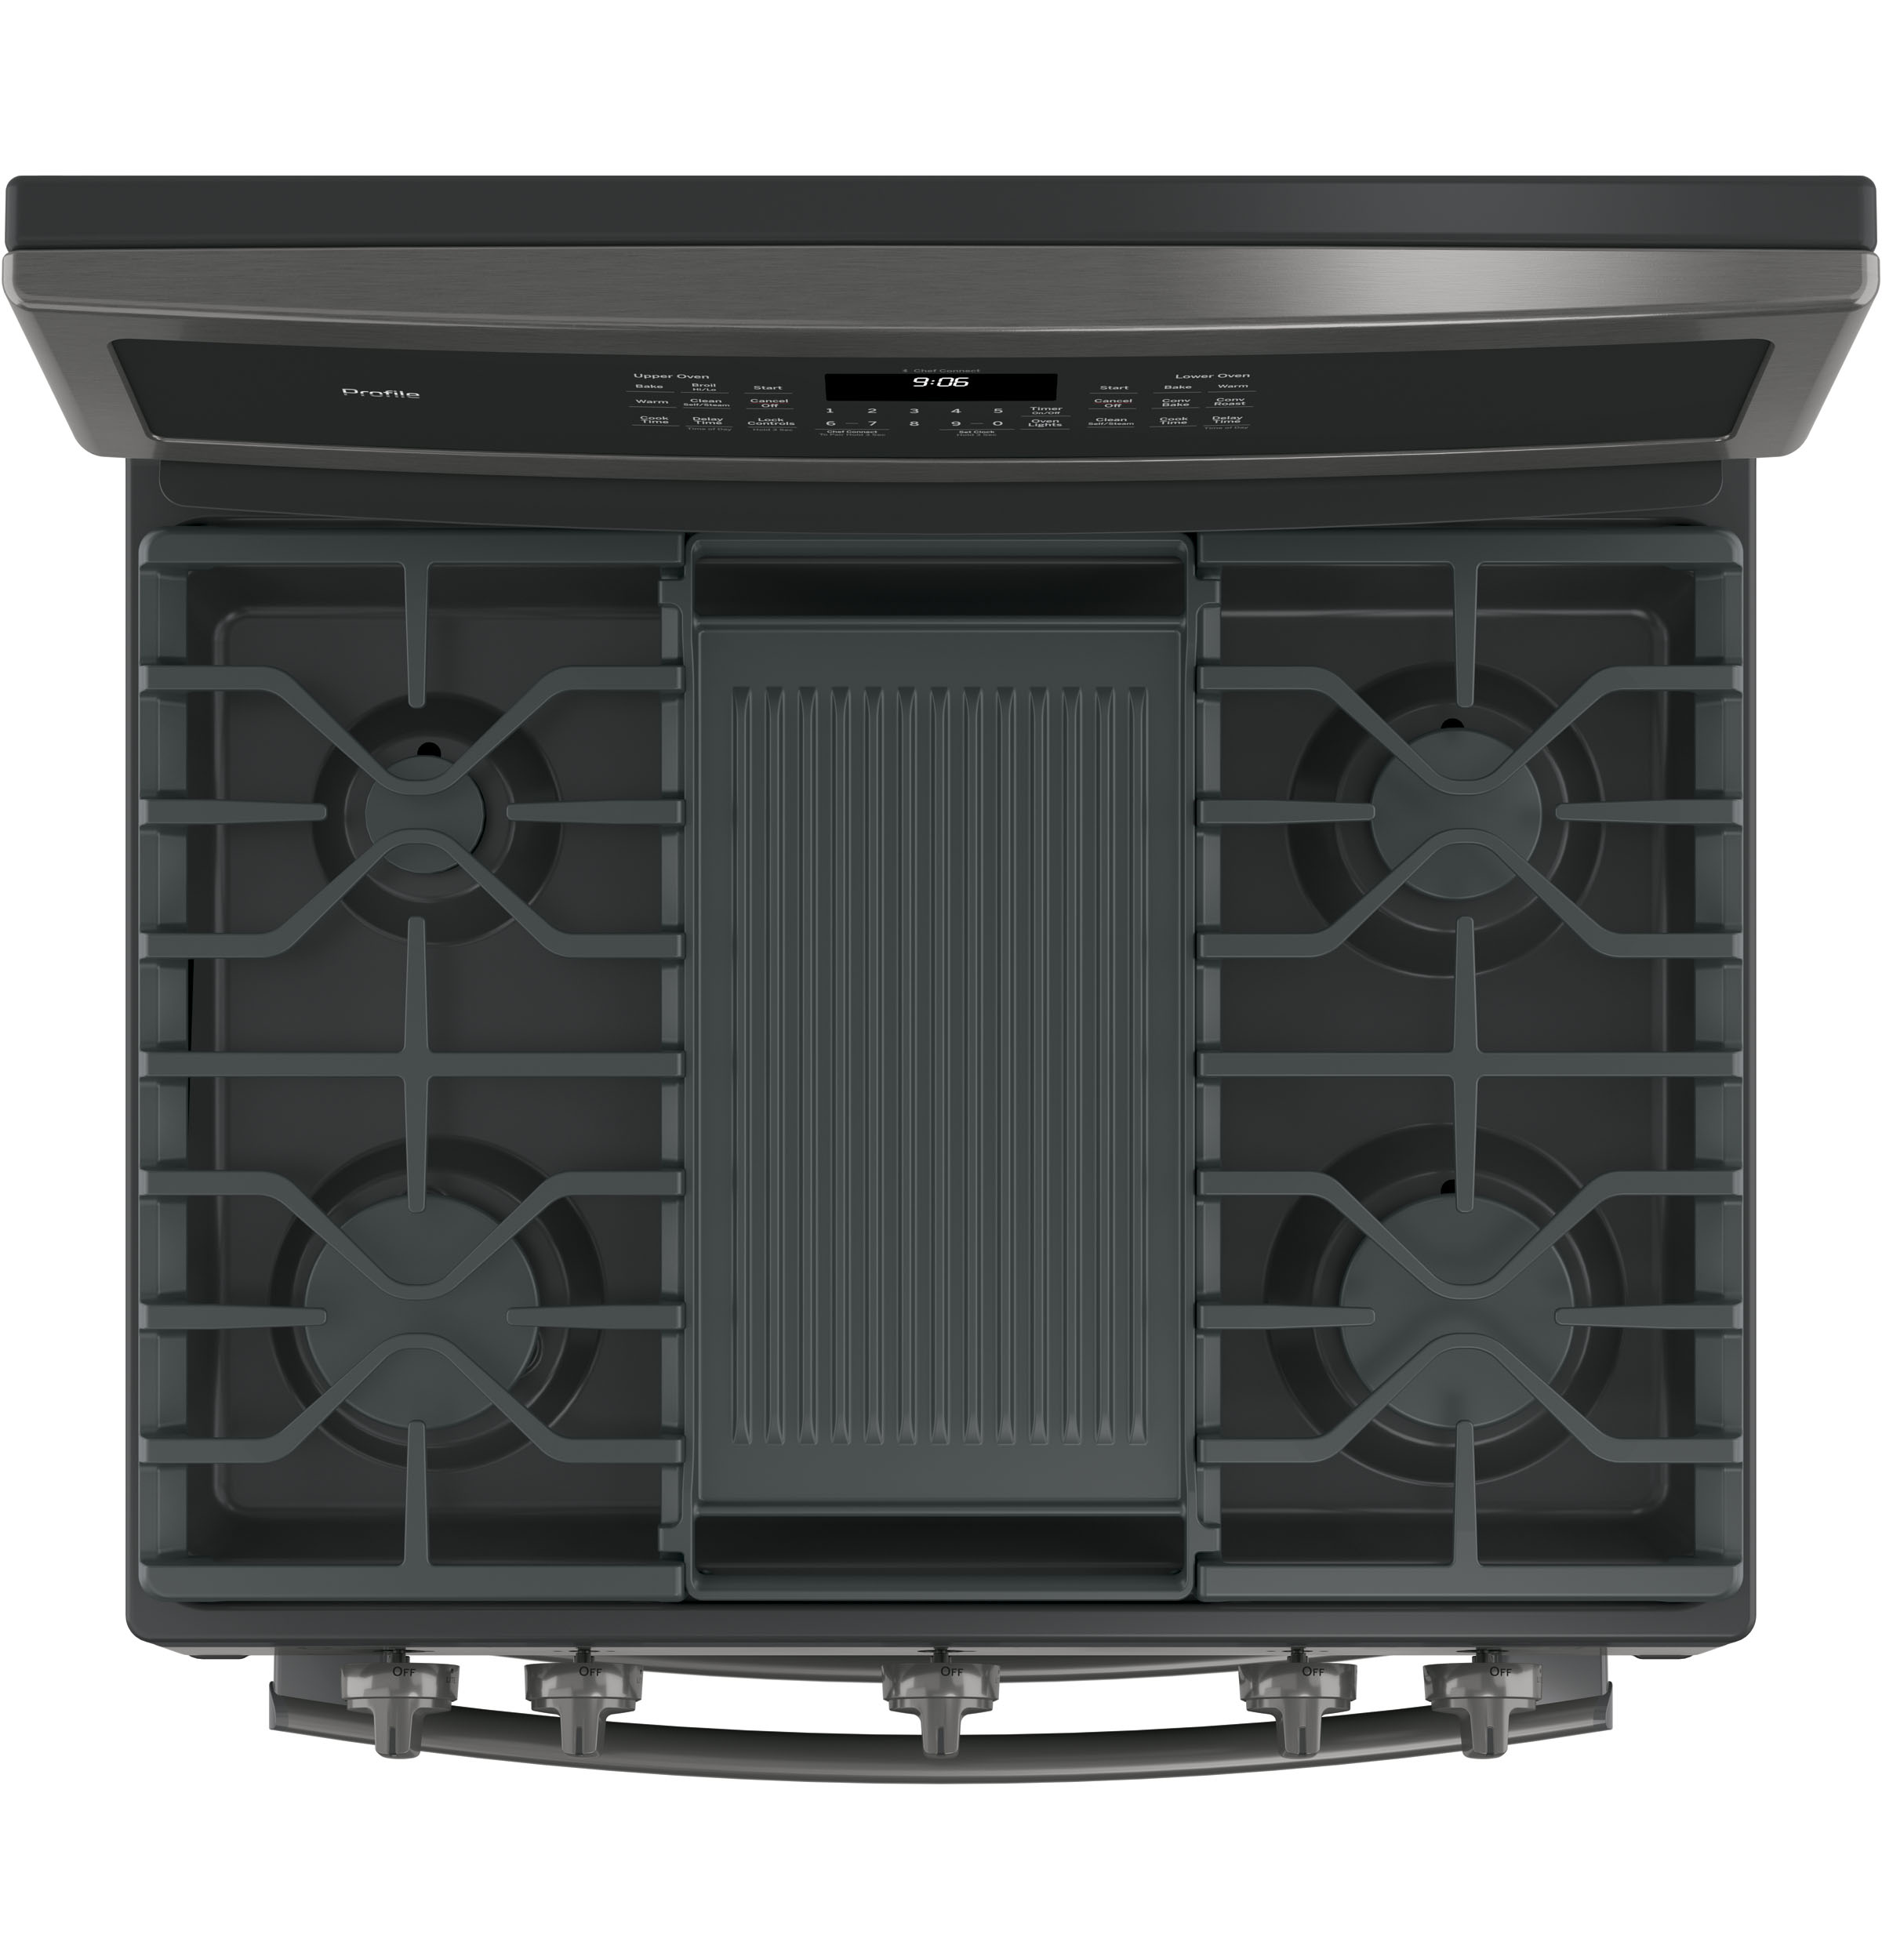 """Profile GE Profile™ 30"""" Free-Standing Gas Double Oven Convection Range"""